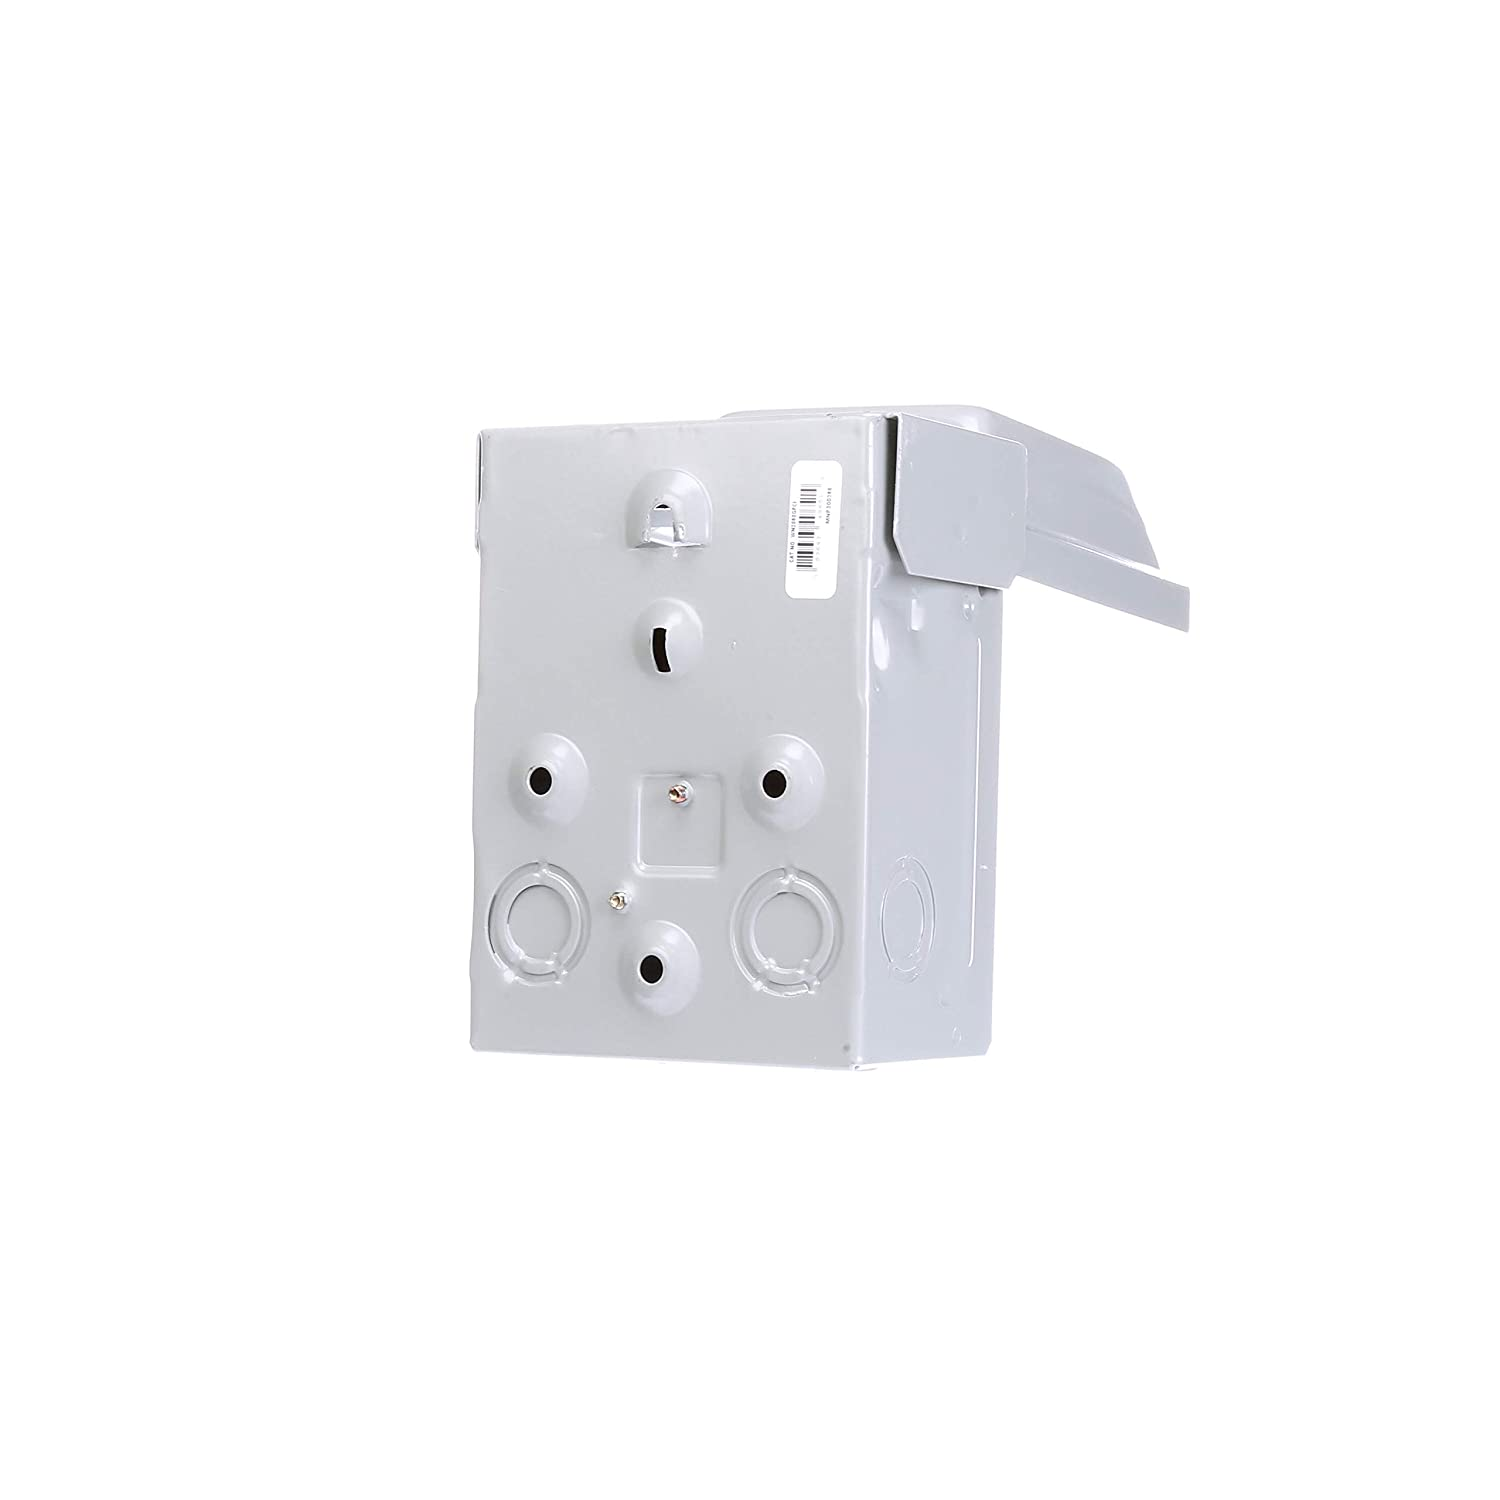 Siemens Wn2060u Non Fused Ac Disconnect With Gfci Receptacle Soldering Wire Buy Socket Switchac Power Fuseac Ground Fault Circuit Interrupter Outlets